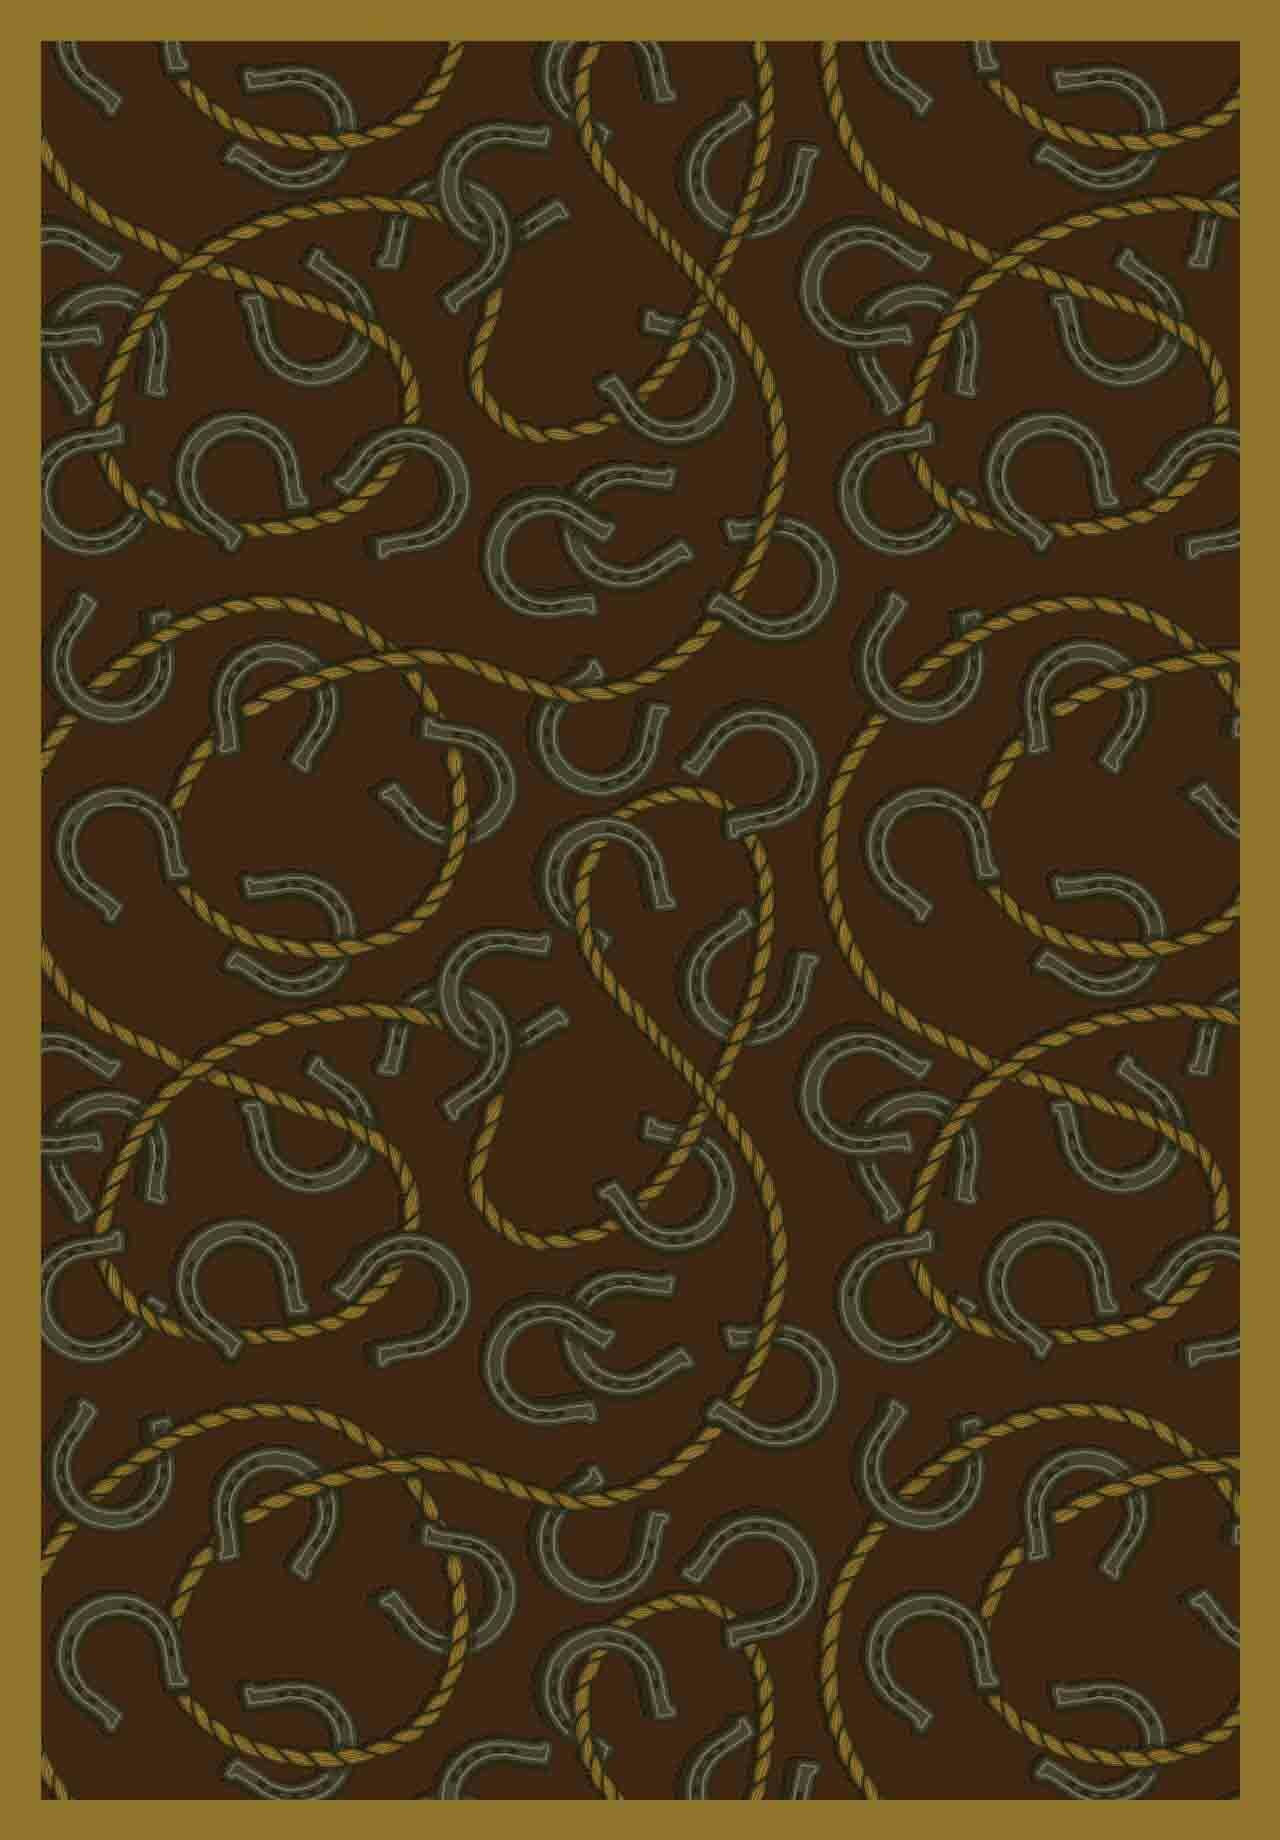 Brown Area Rug Rug Size: 5'4